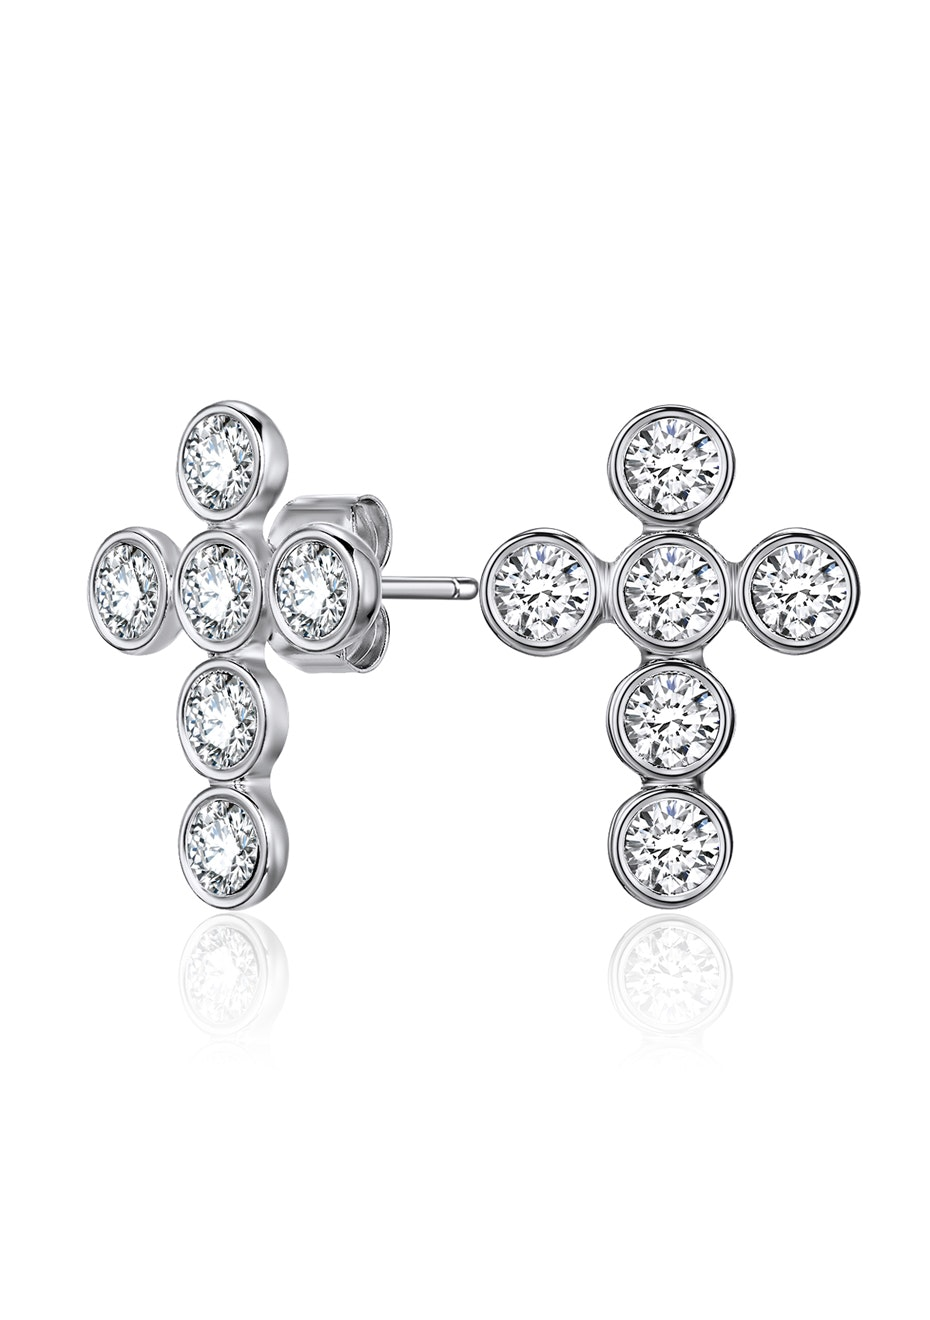 Cross Earrings Embellished with Crystals from Swarovski